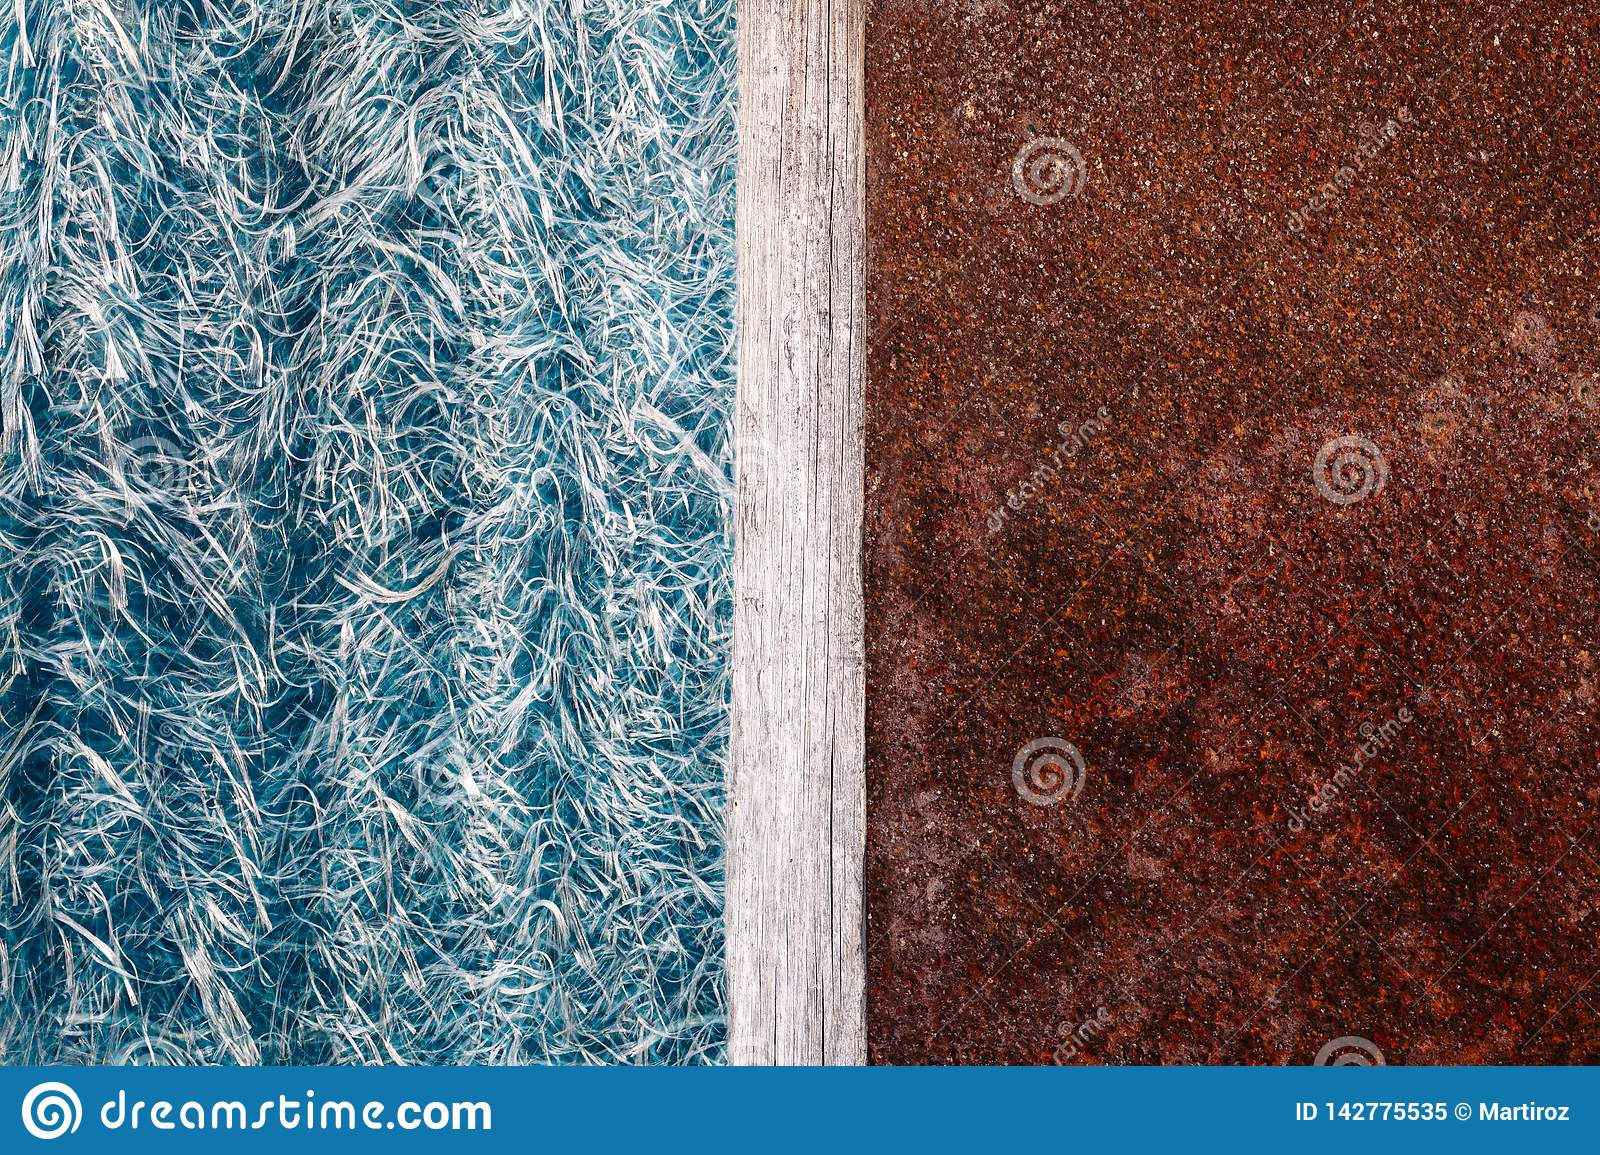 Abstraction of blue textolite slate, background in half with a rusty metal plate and a dividing strip of wood